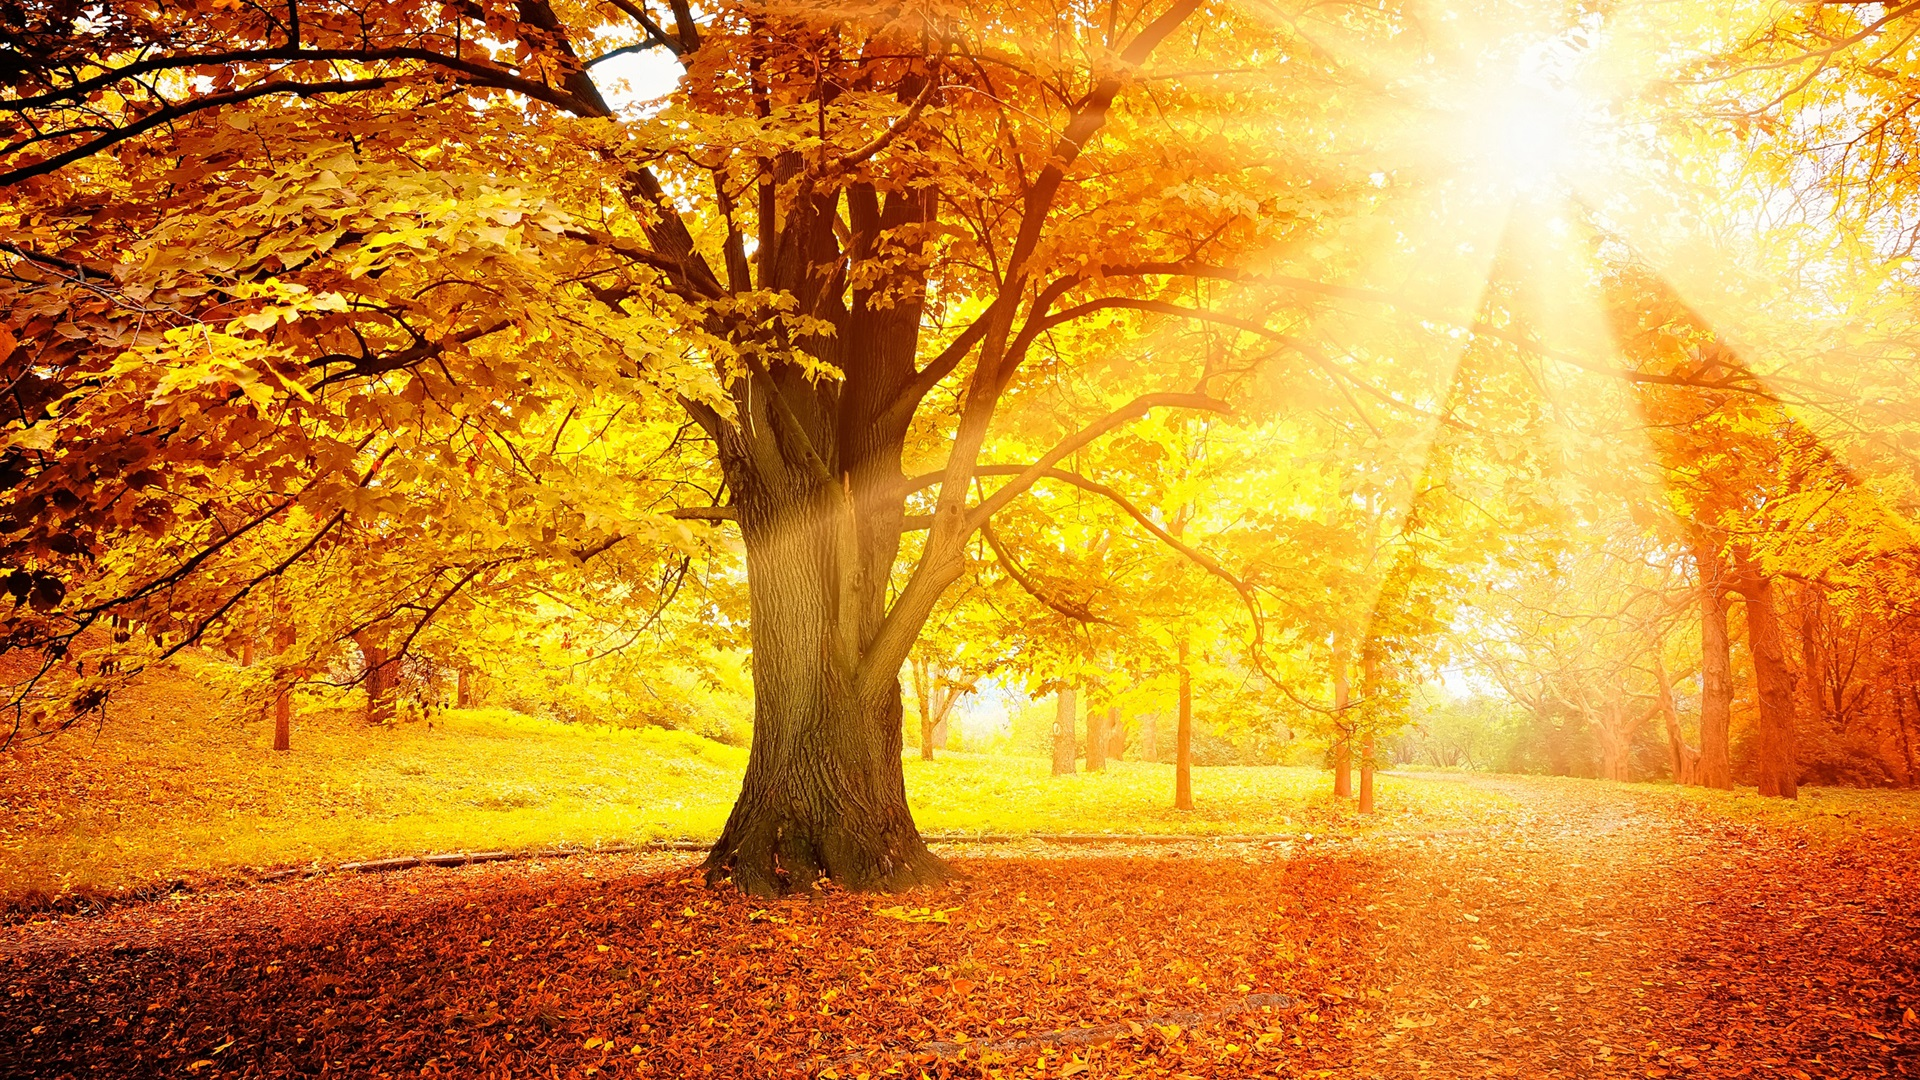 Best Used Motorcycles >> Sunset autumn, forest, yellow leaves, trees, sun Wallpaper ...